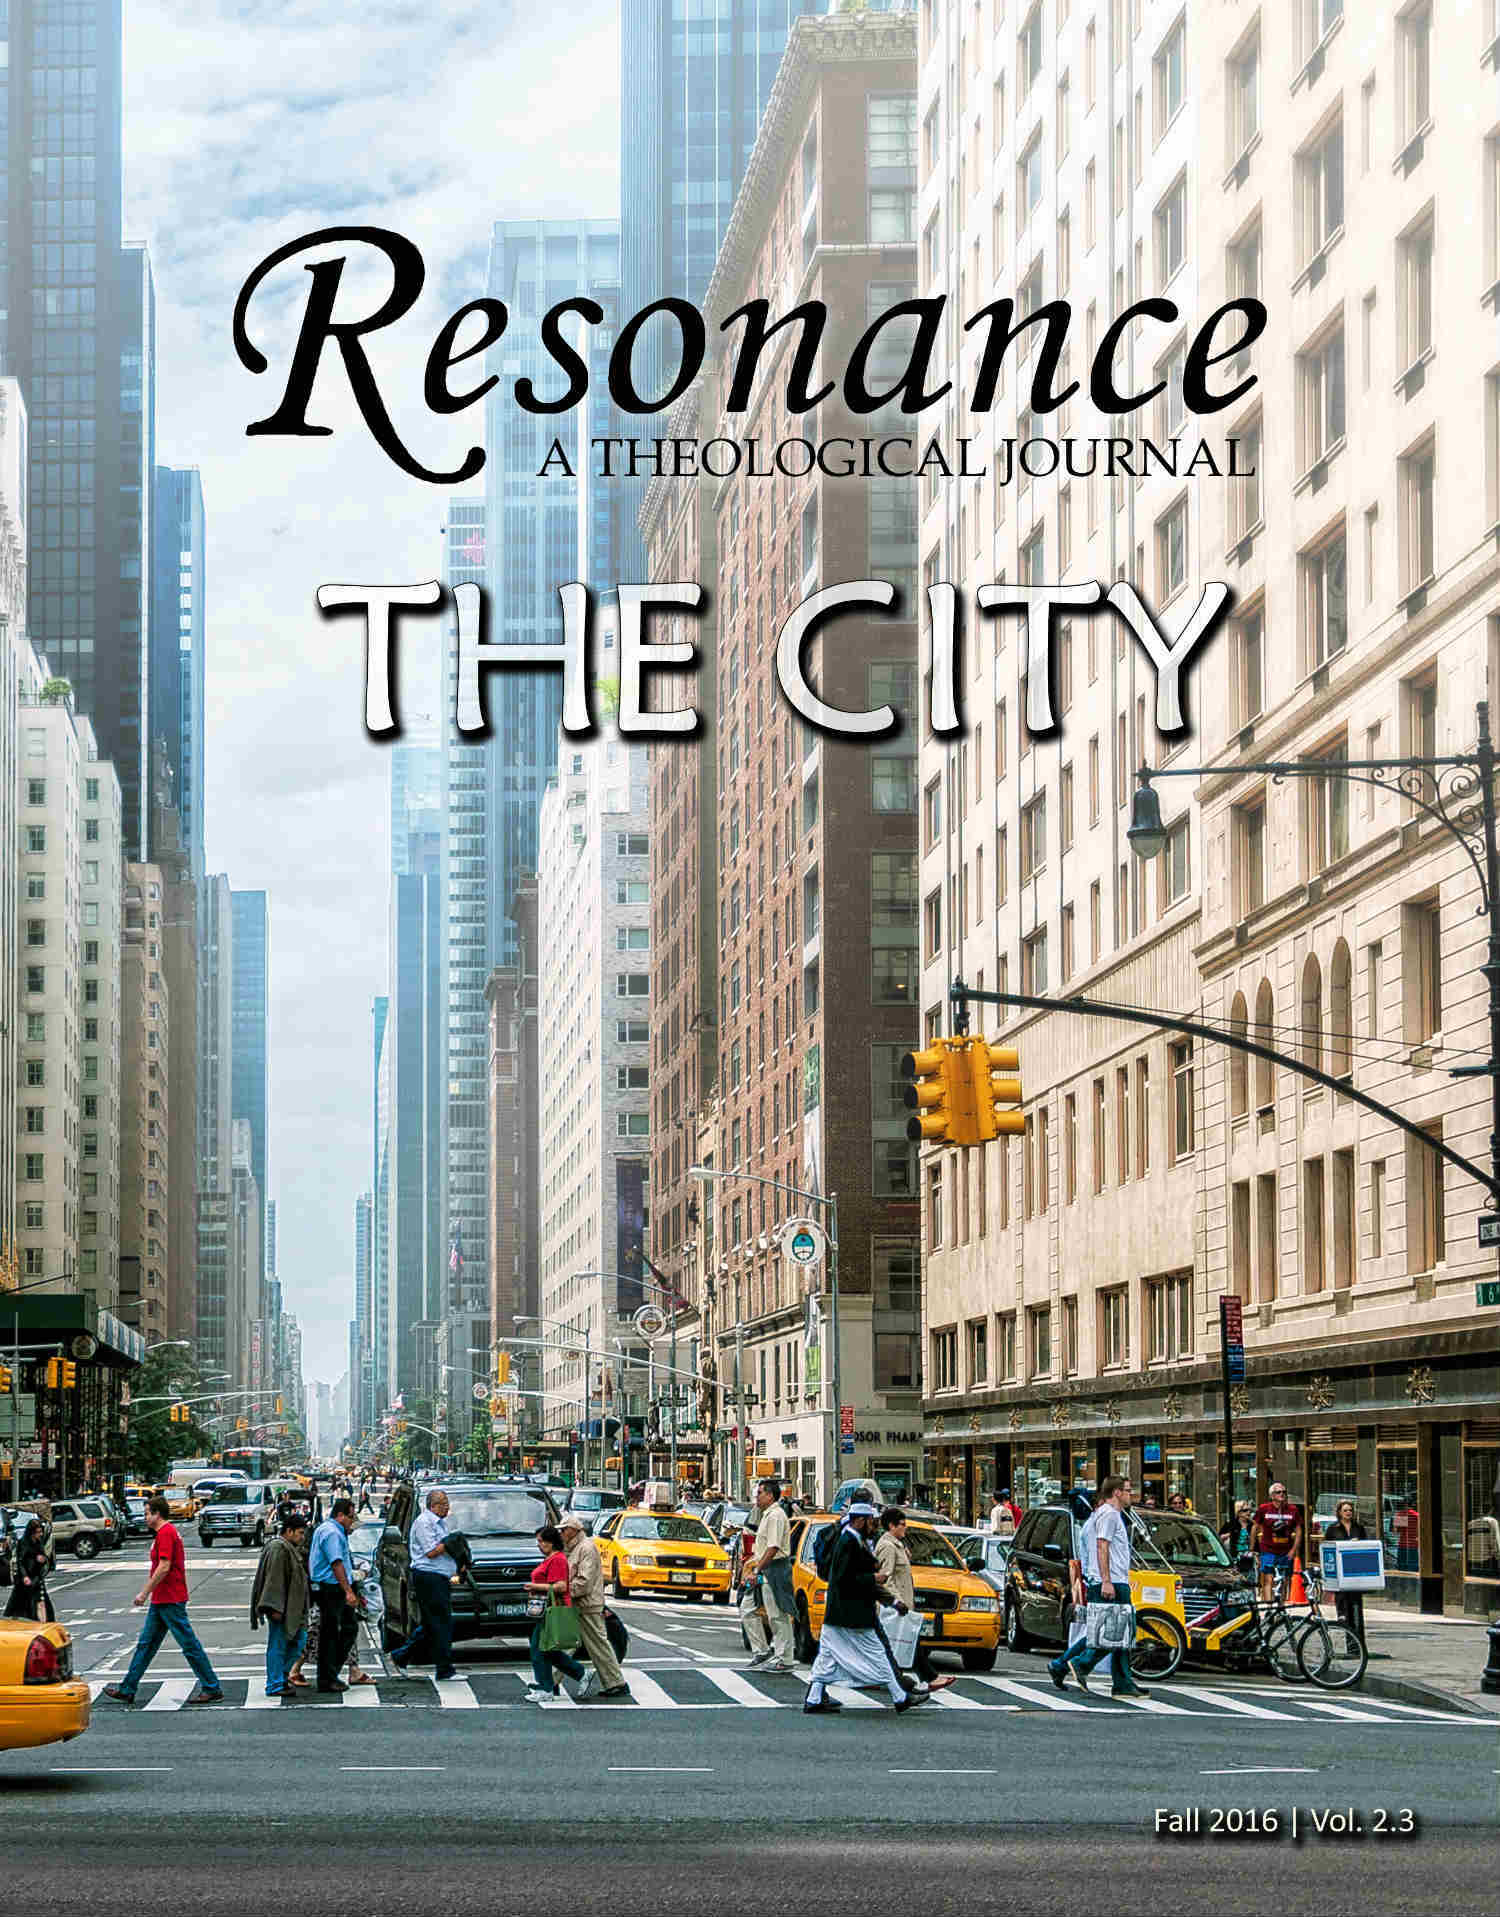 Resonance Theological Journal Vol 2.3 The City Cover